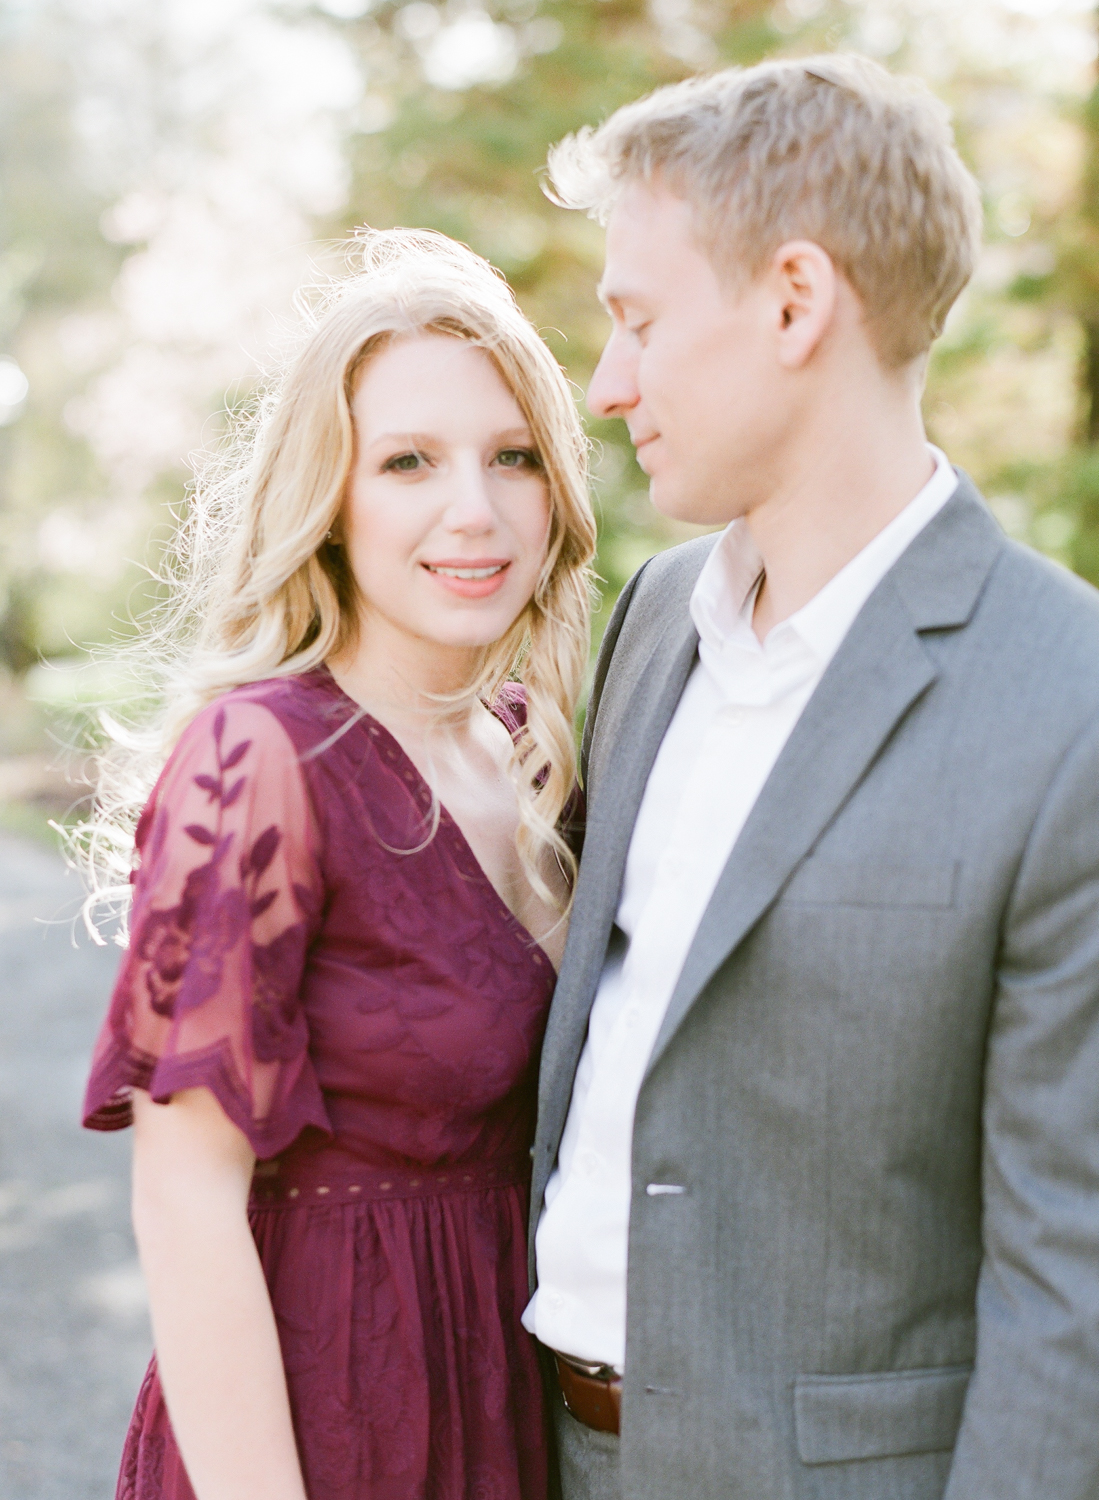 Jacqueline Anne Photography - Amanda and Brent-93.jpg